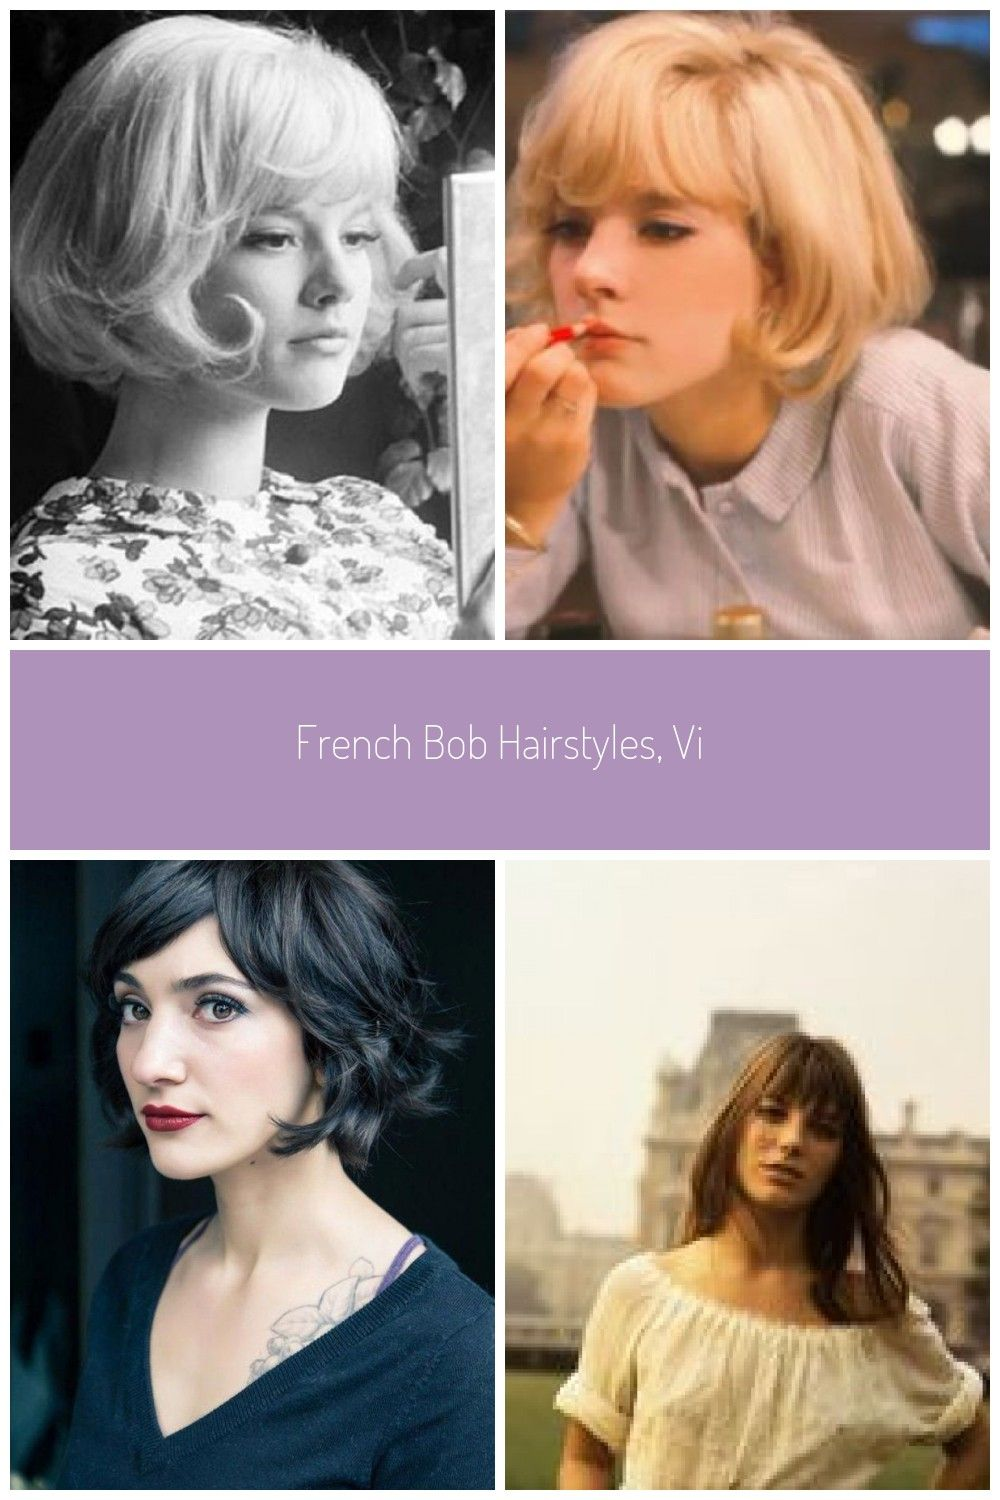 French Bob Hairstyles, vintage 10s styles, haircuts, hairstyles